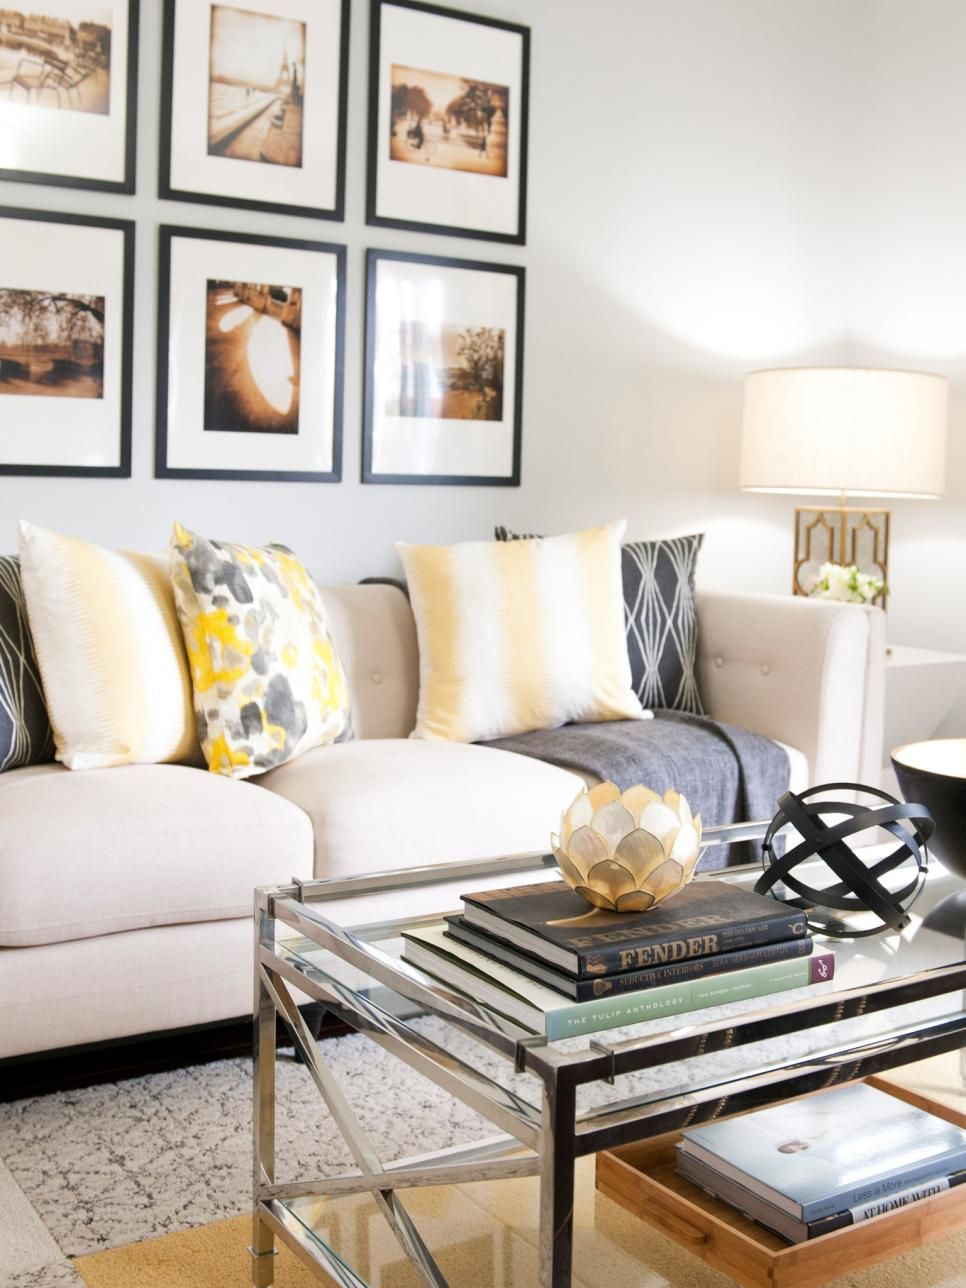 Colorful Home Makeovers From Property Brothers: Buying + Selling ...